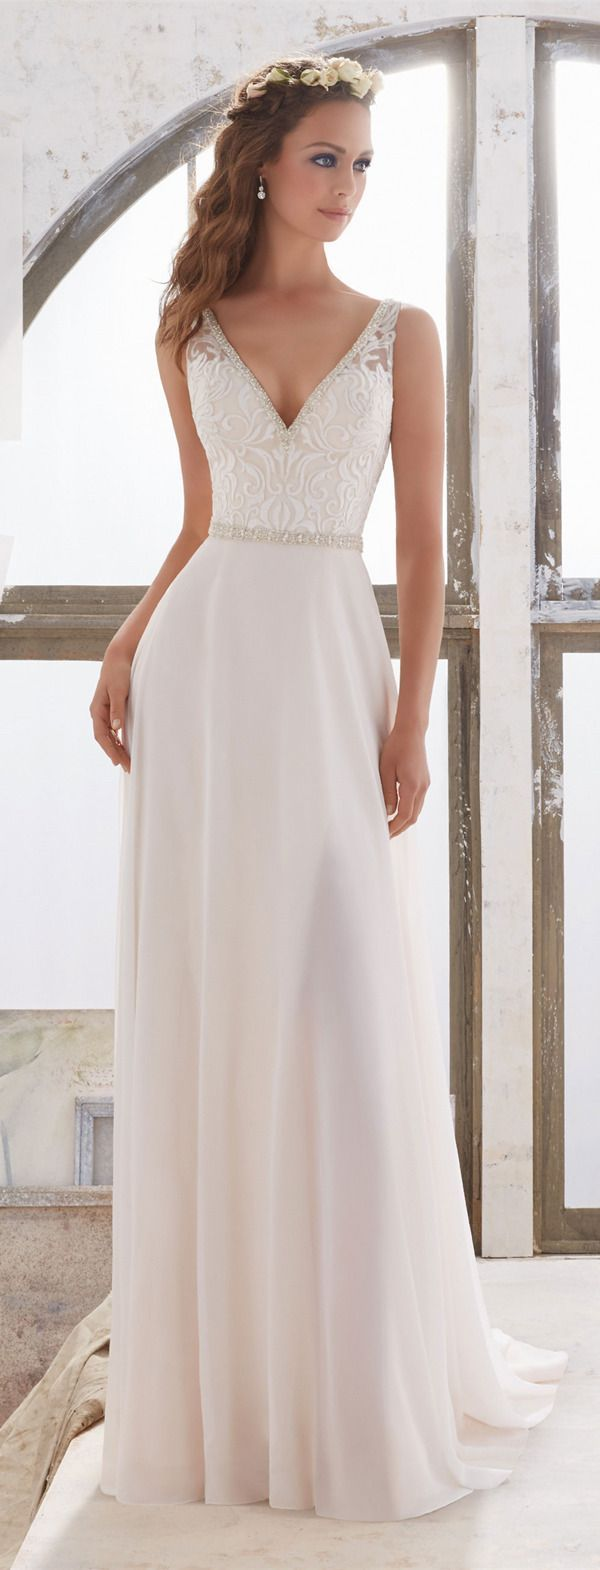 9 best Brautkleid images on Pinterest | Gown wedding, The bride and ...